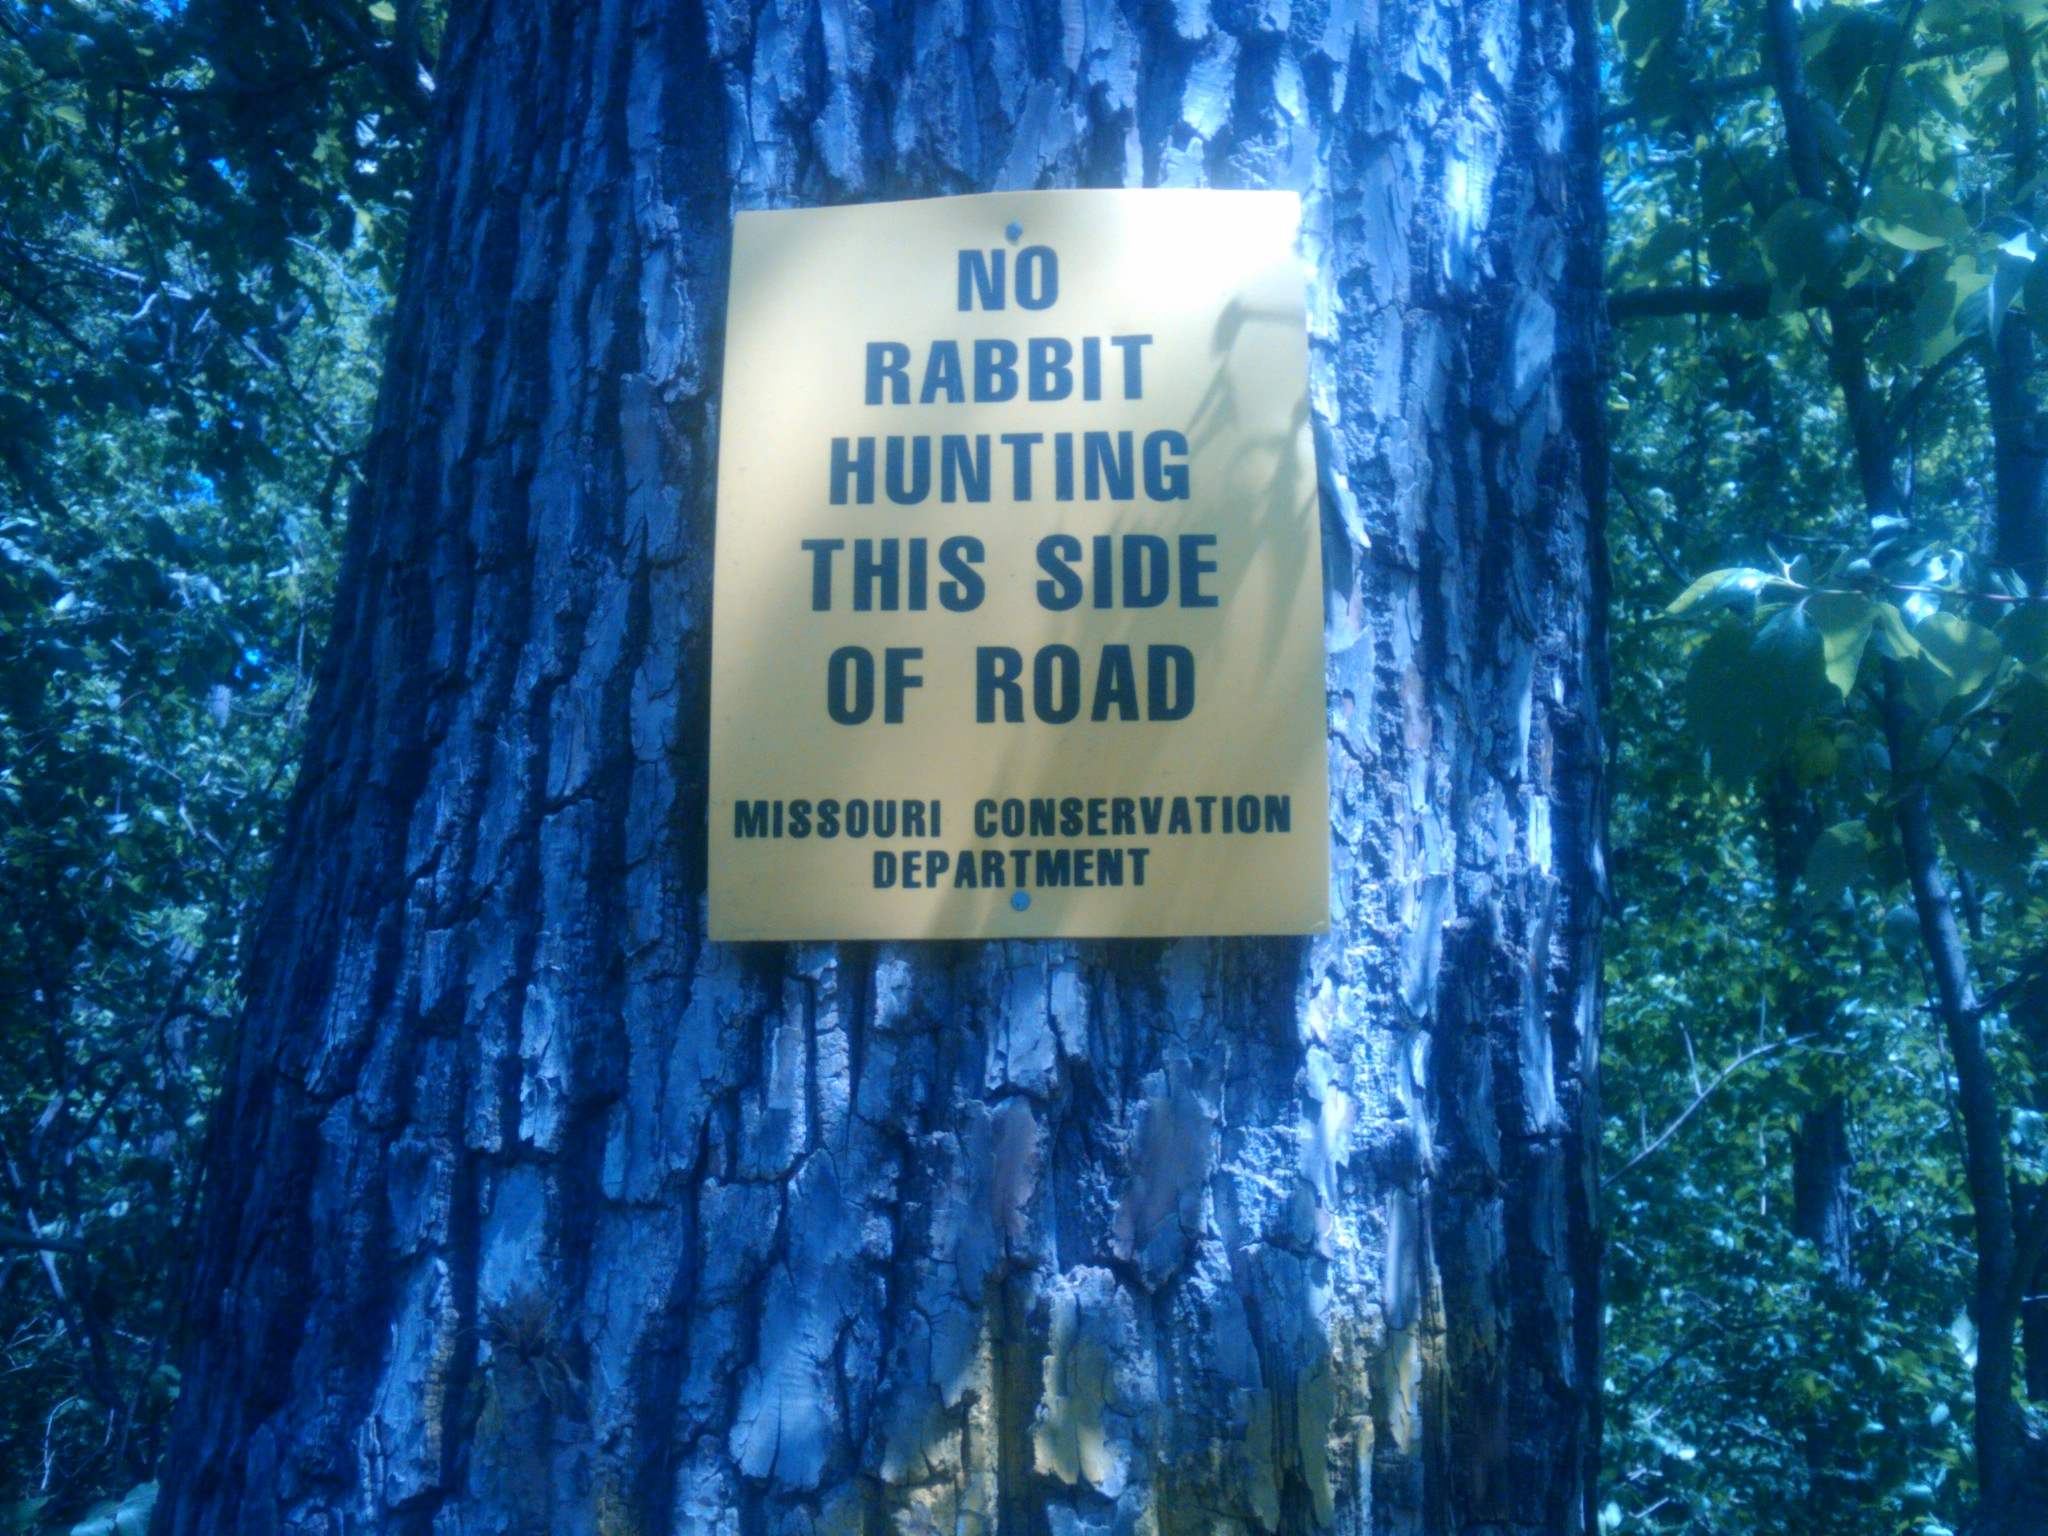 On one side of the trail, no rabbit hunting, on the other side, it was  allowed. Now really?! Rabbit hunting? I don't understand why ...